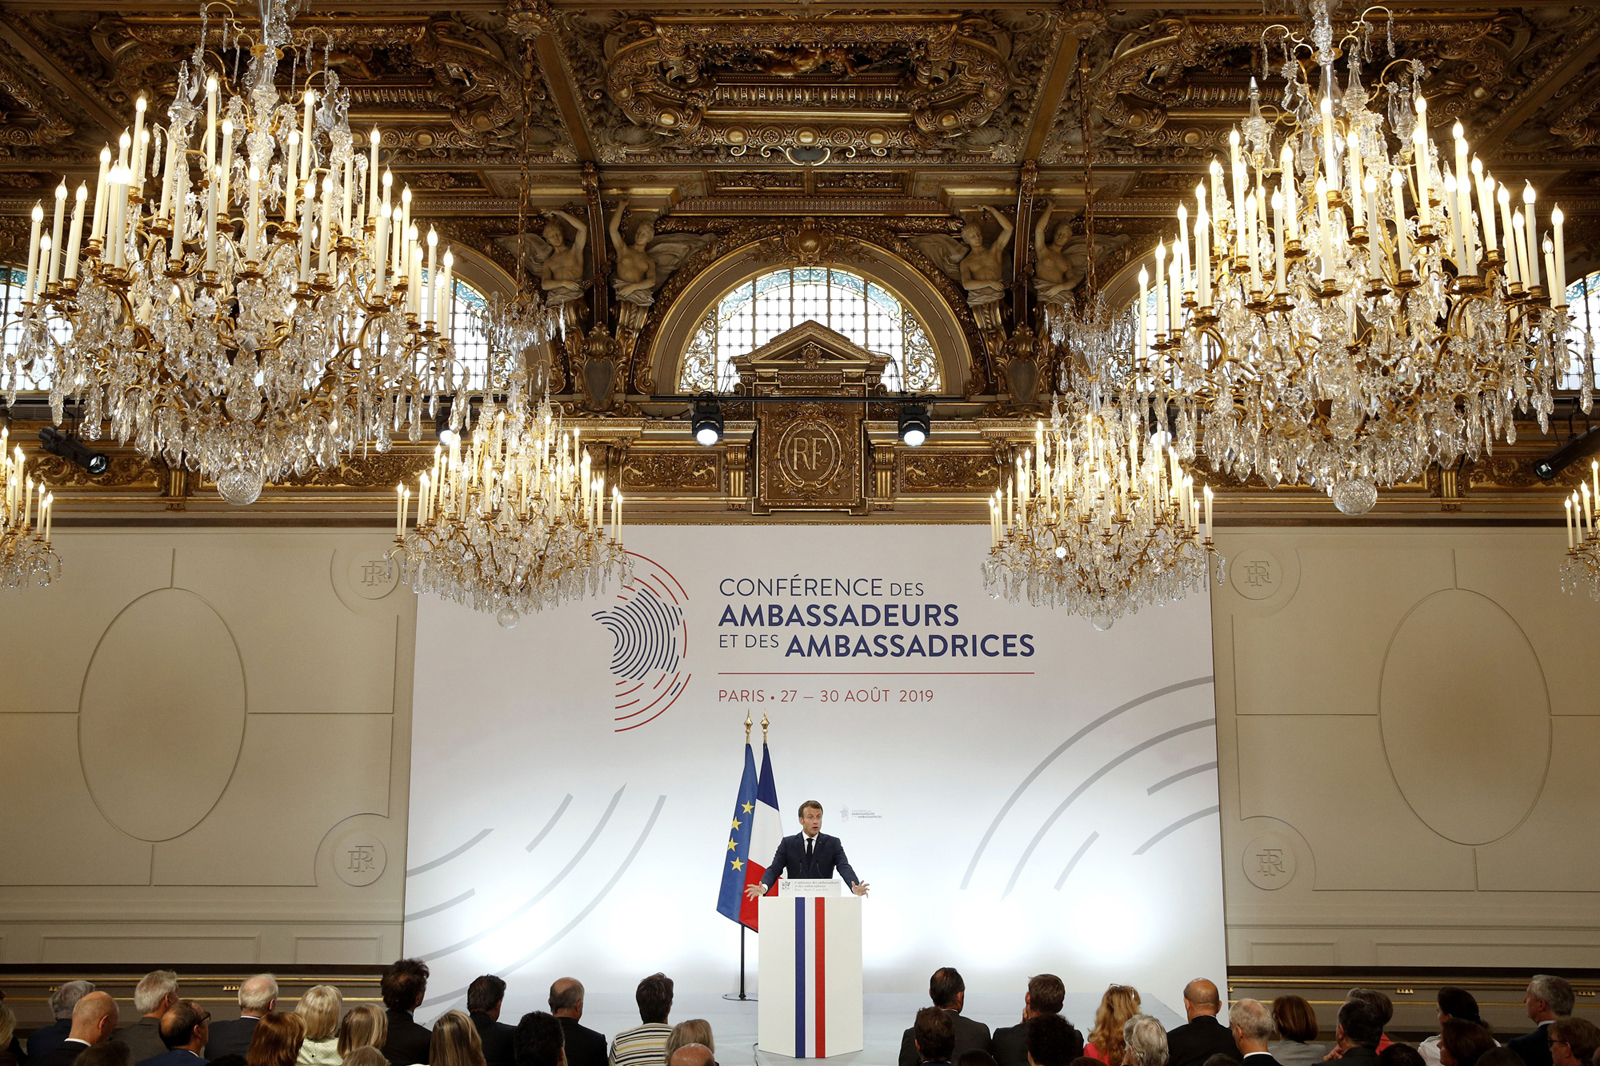 Macron delivered a major diplomatic speech